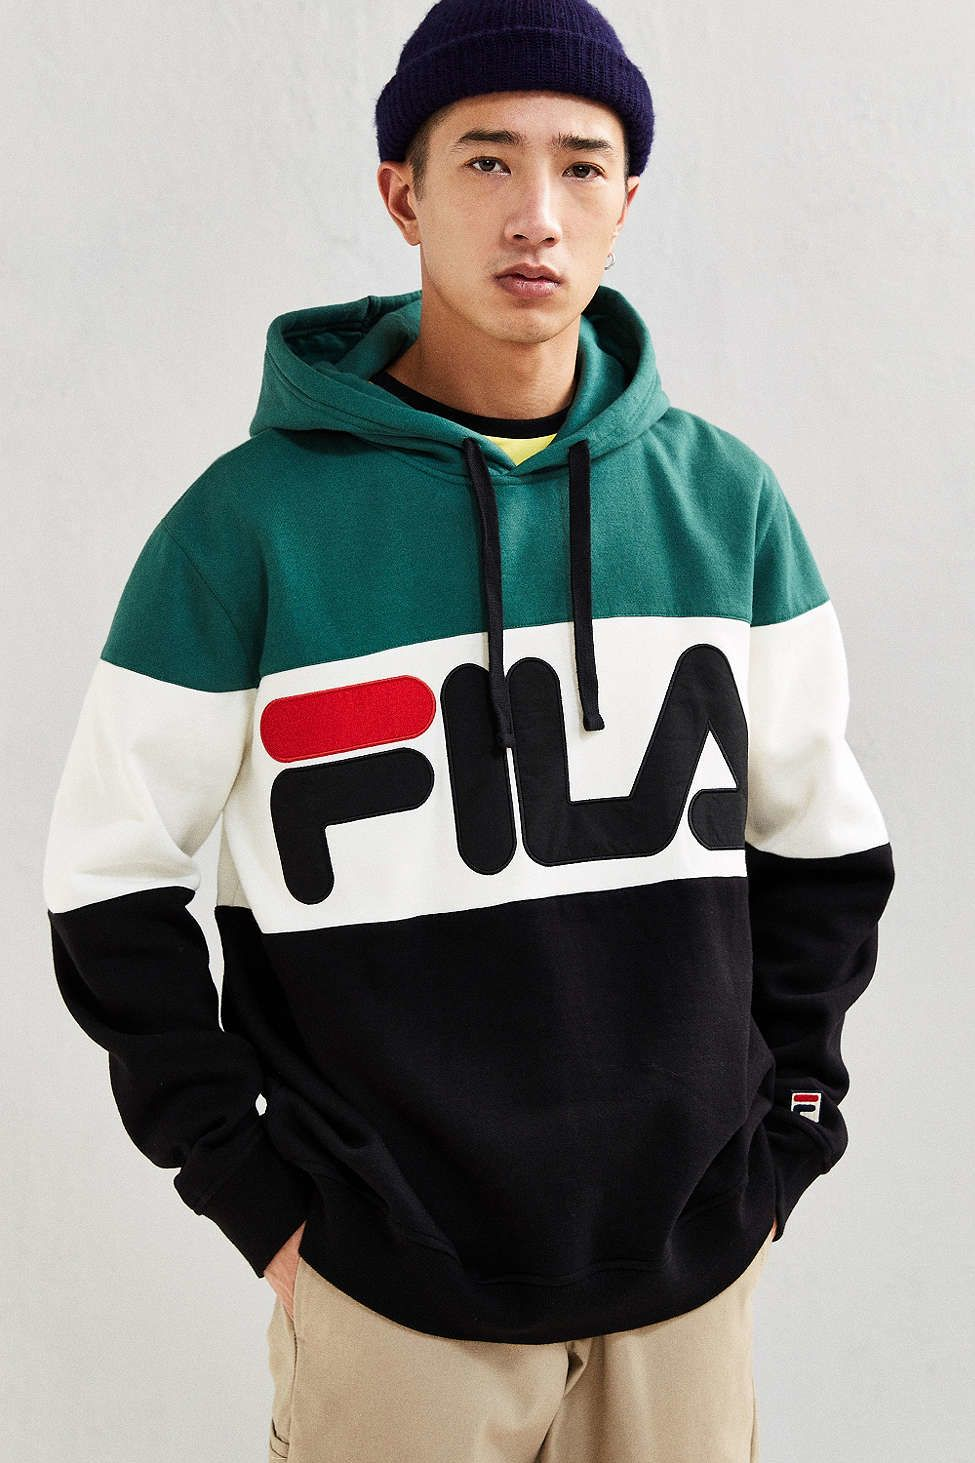 Shop FILA Colorblocked Hoodie Sweatshirt at Urban Outfitters today. We  carry all the latest styles, colors and brands for you to choose from right  here.